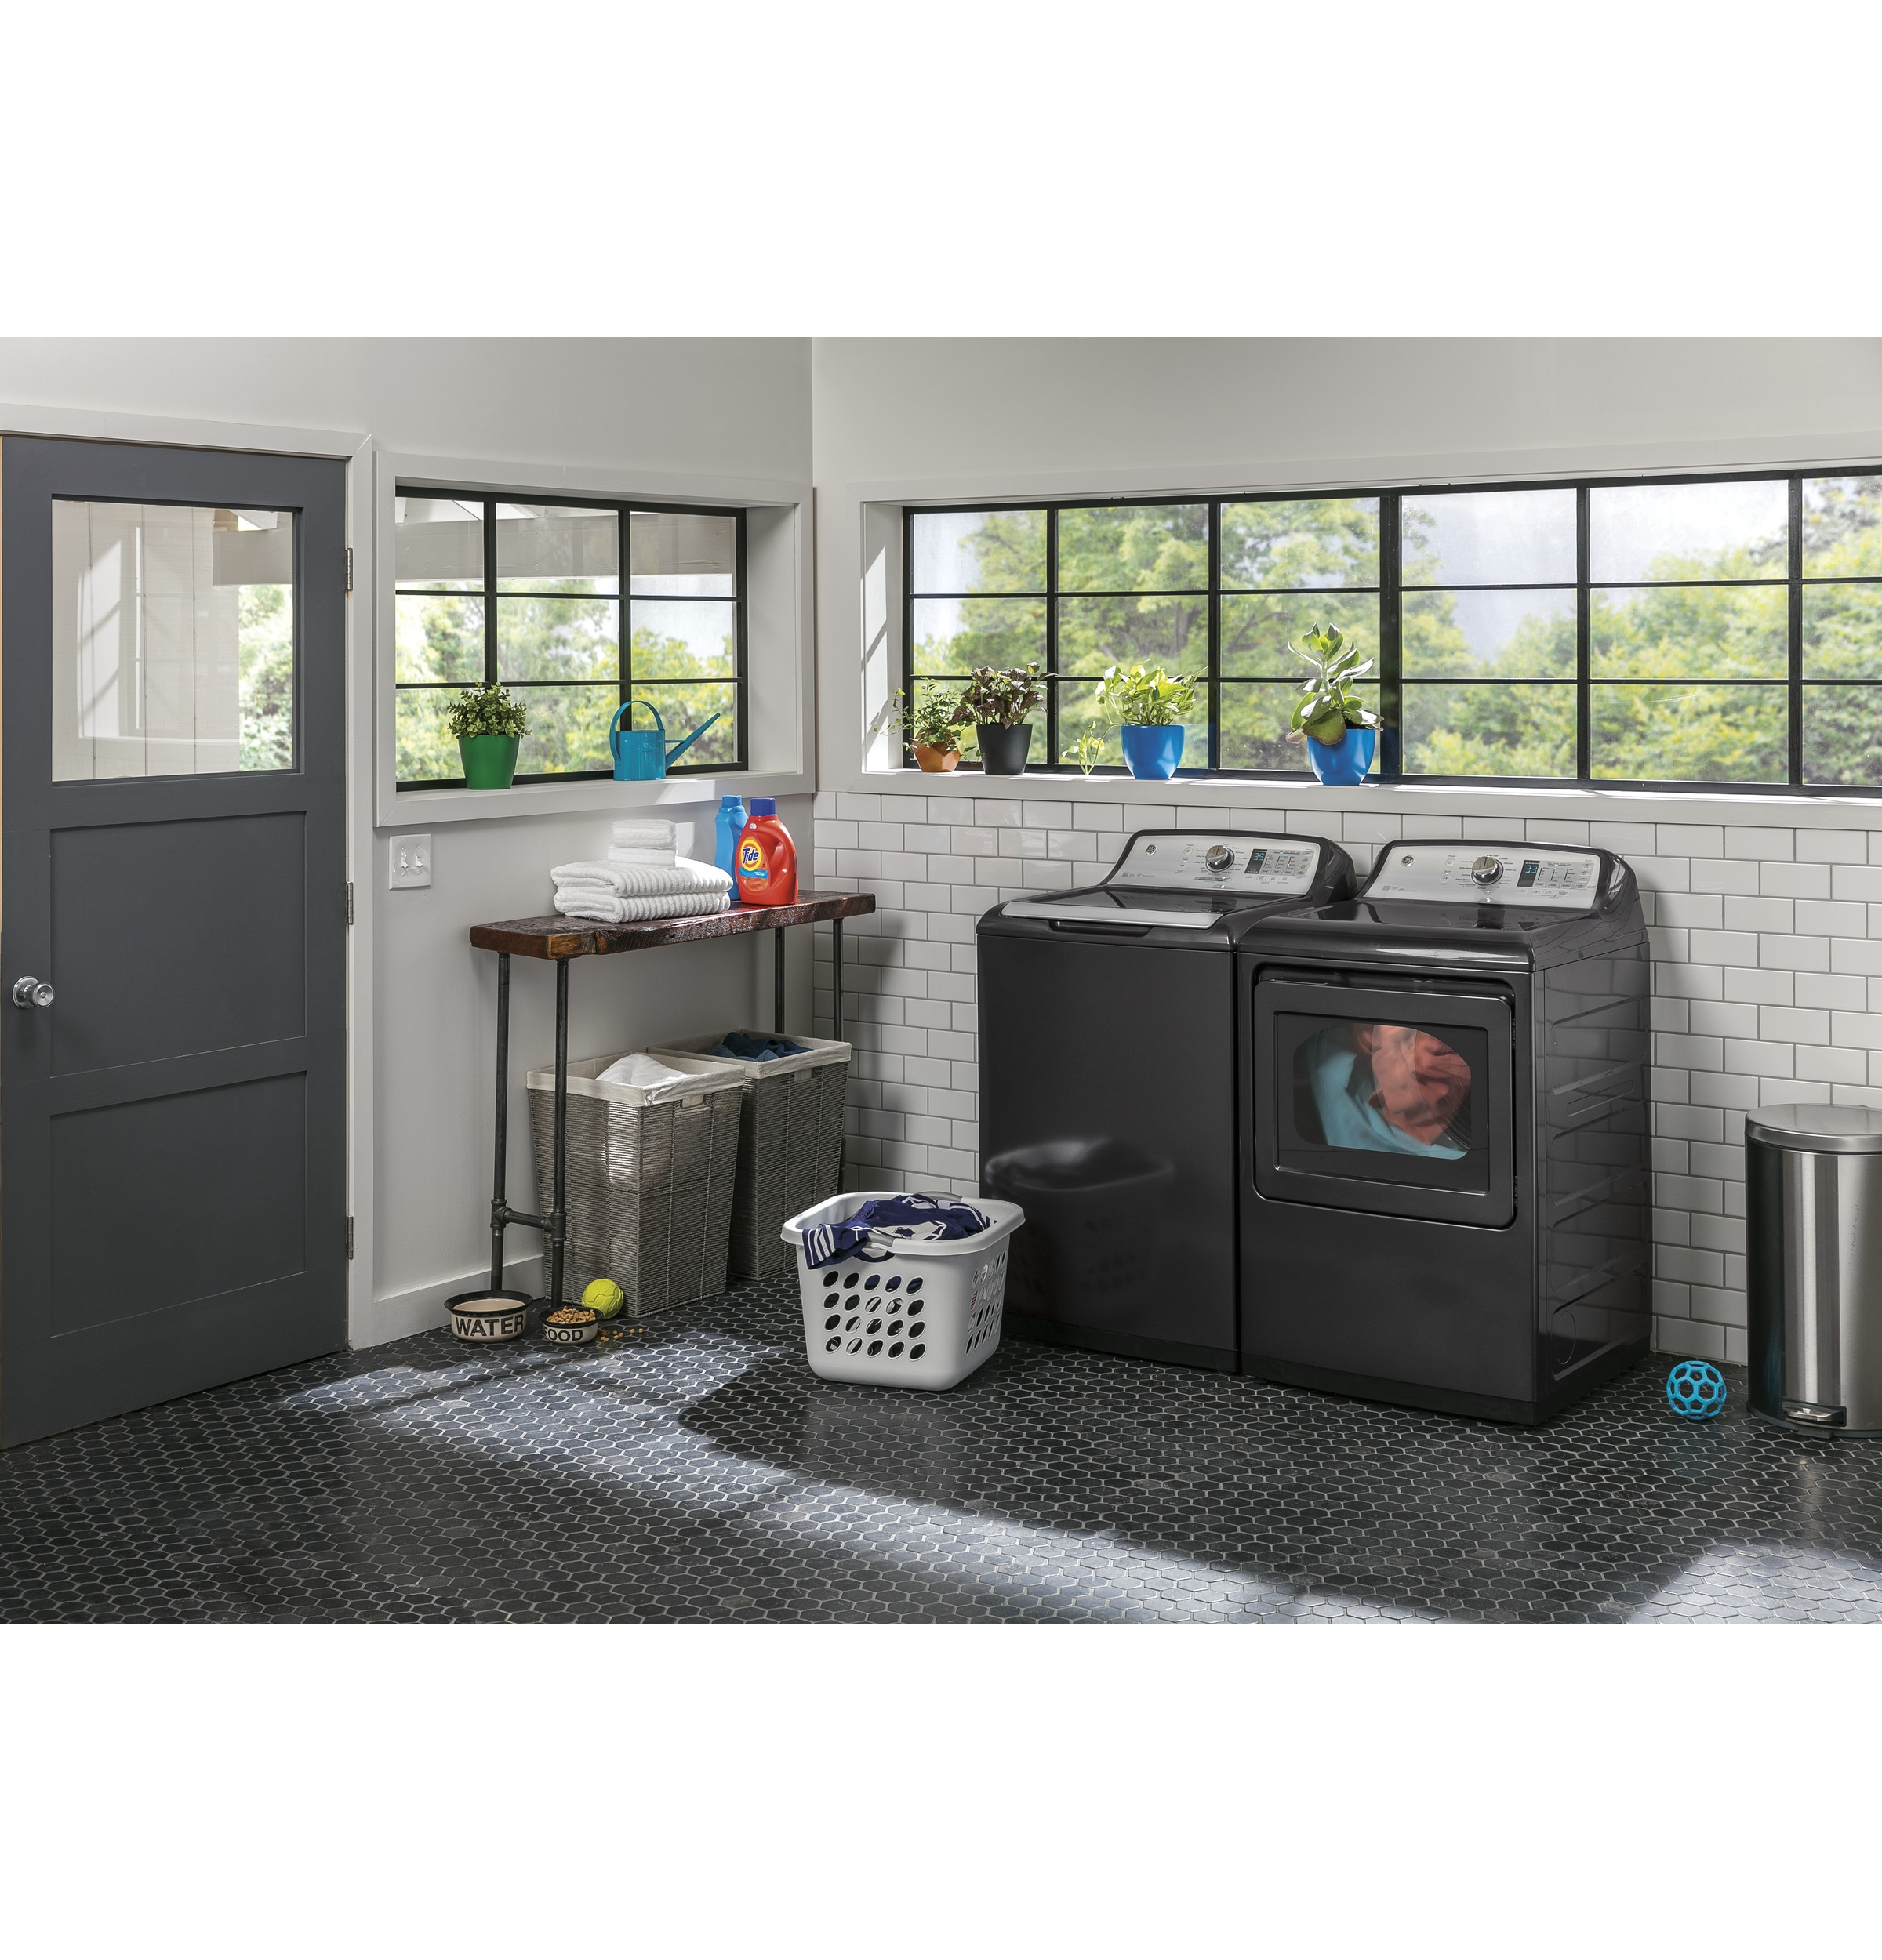 Model: GTW755CPMDG | GE® 4.9  cu. ft. Capacity  Washer with Stainless Steel Basket